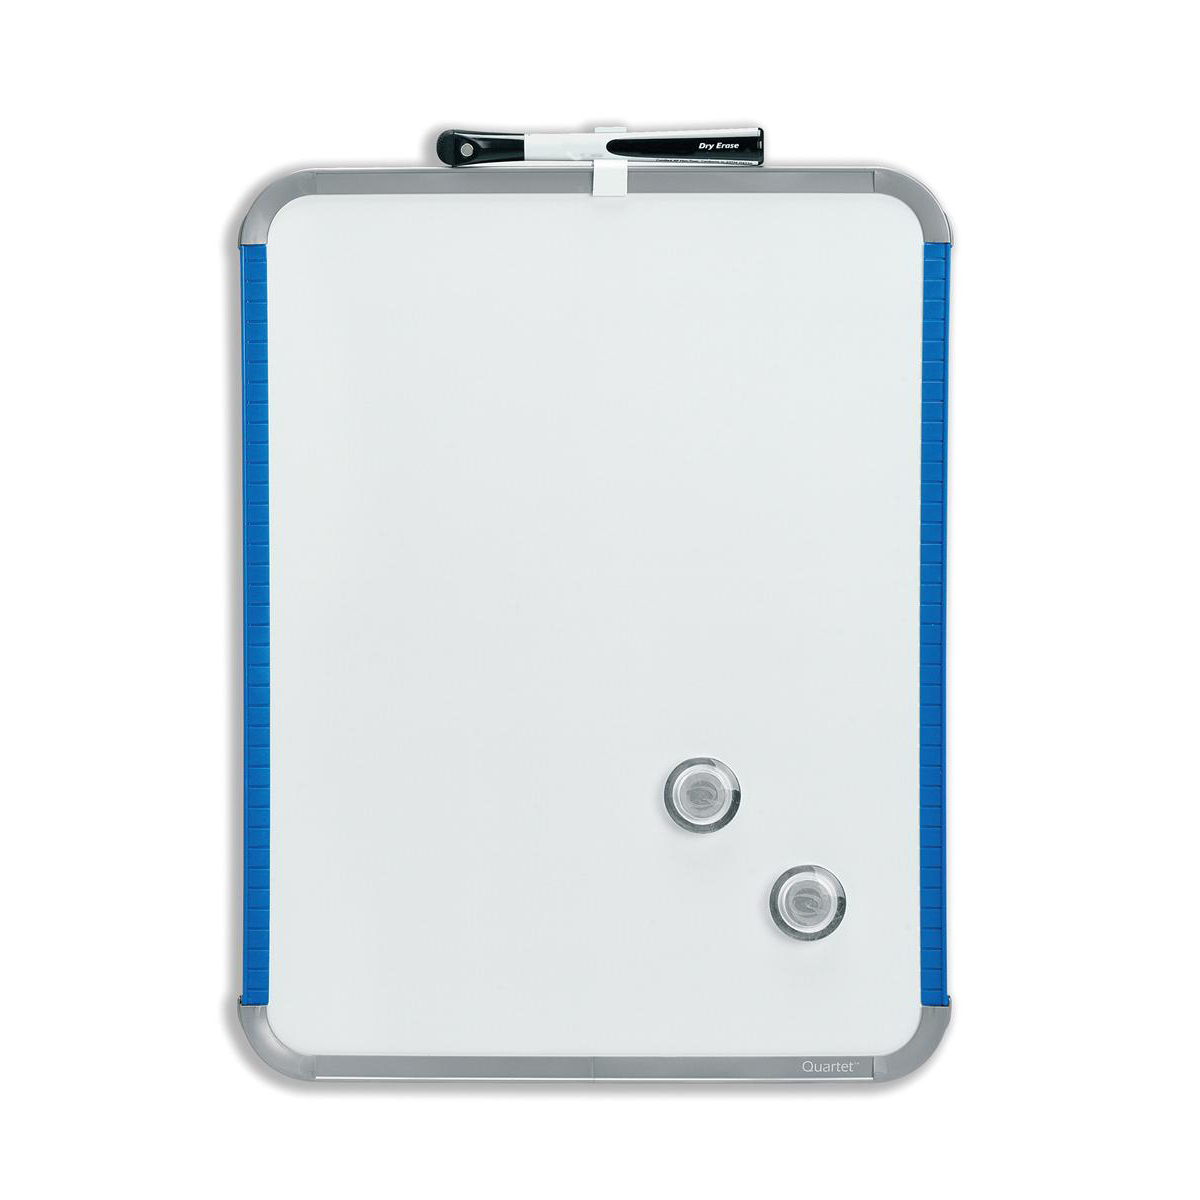 Image for Nobo SlimLine Drywipe Board Magnetic with Pen and Eraser 220x14x280mm White and Blue Ref QB05142AS